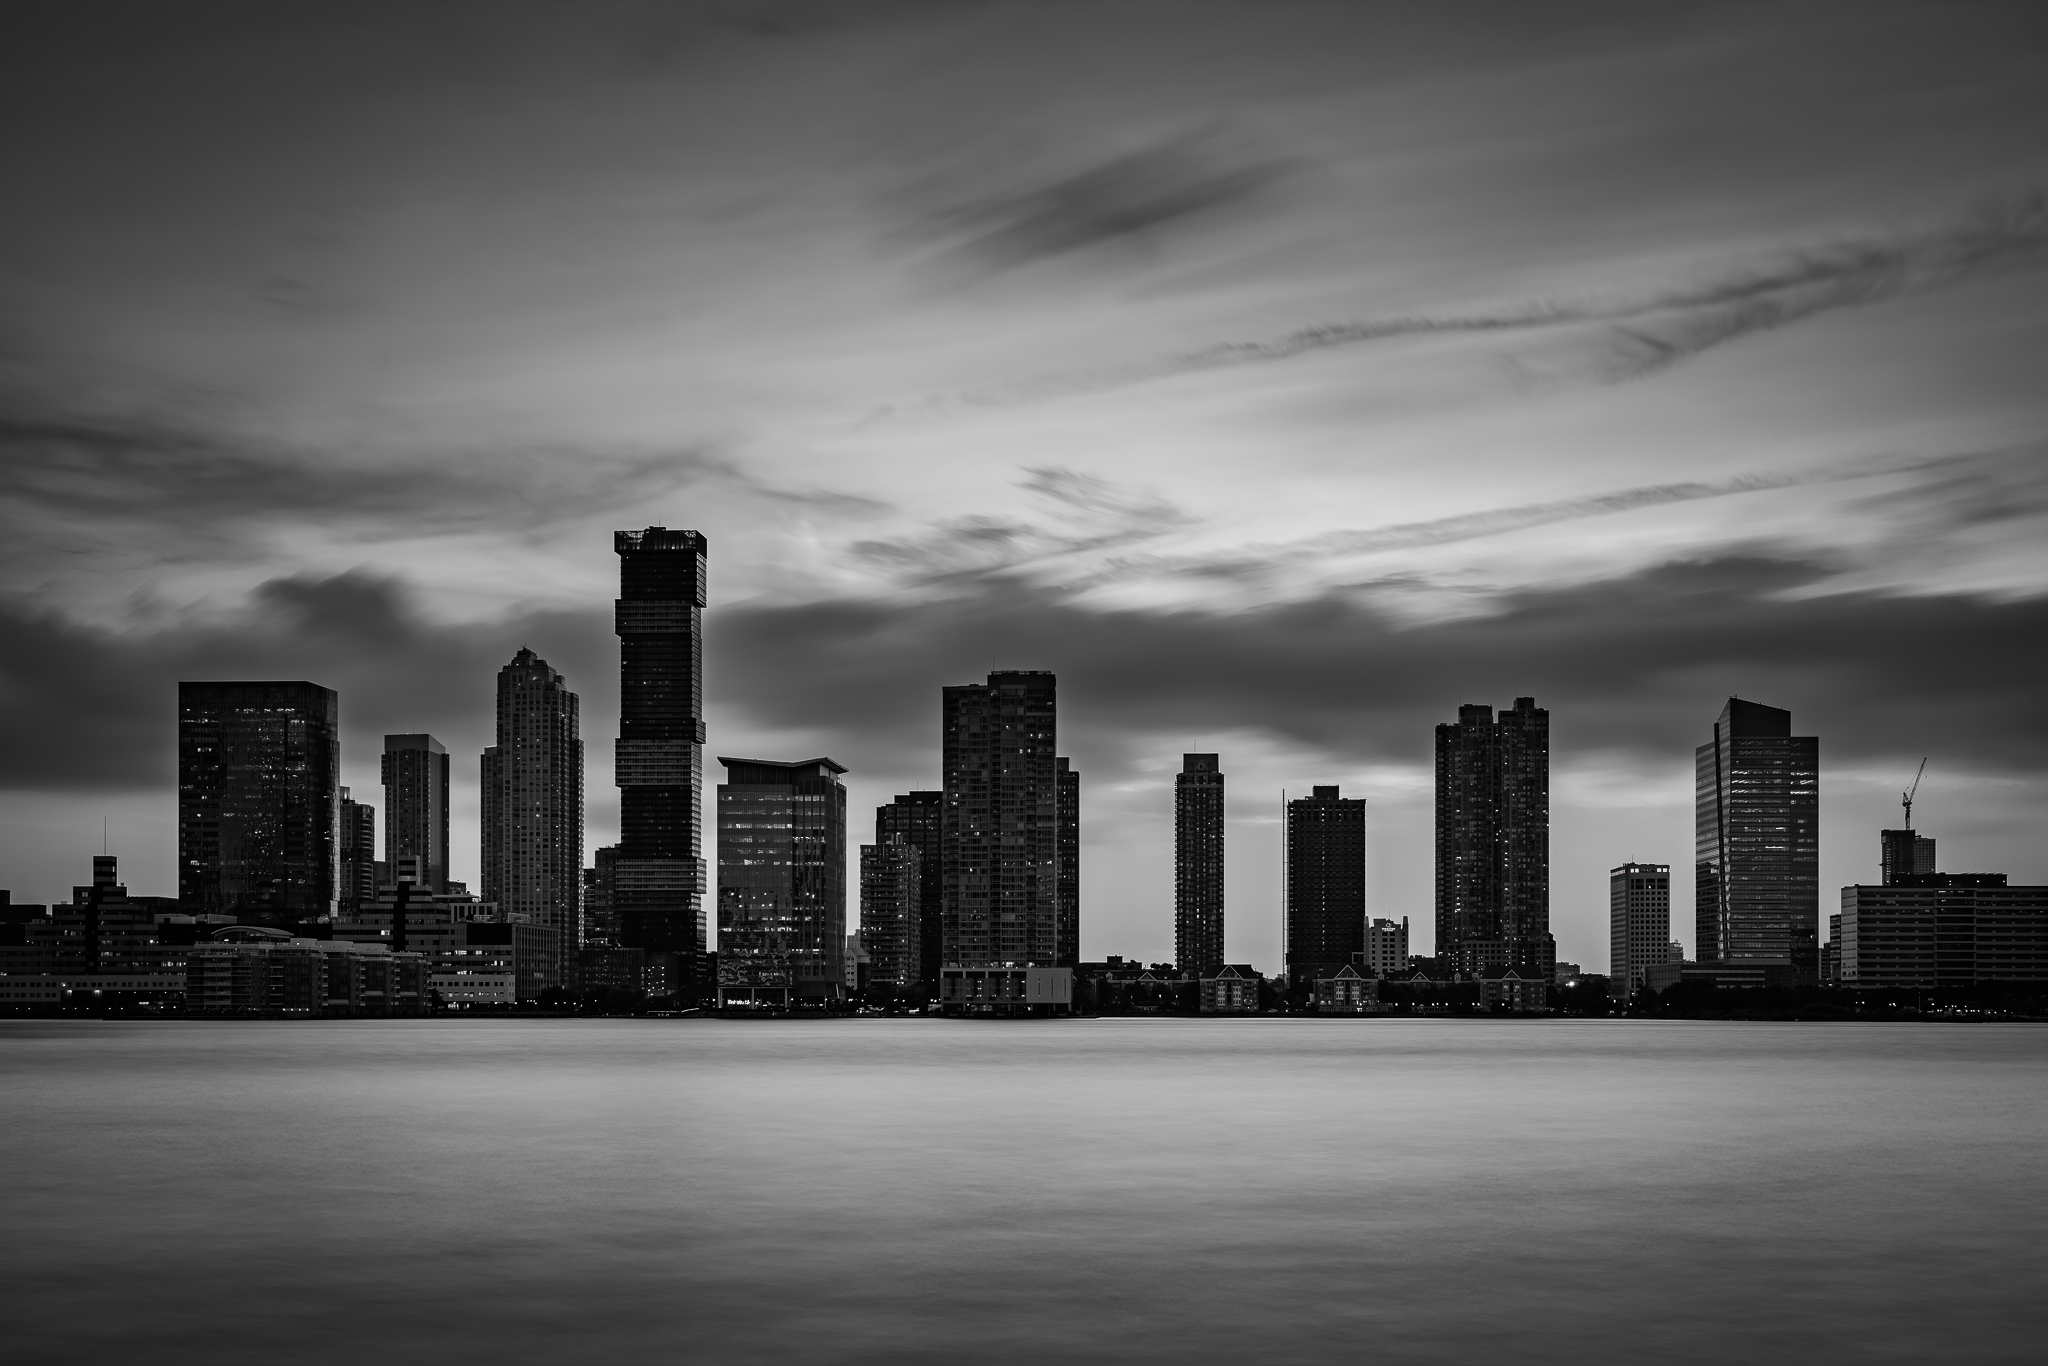 a photo of the jersey city skyline in black and white